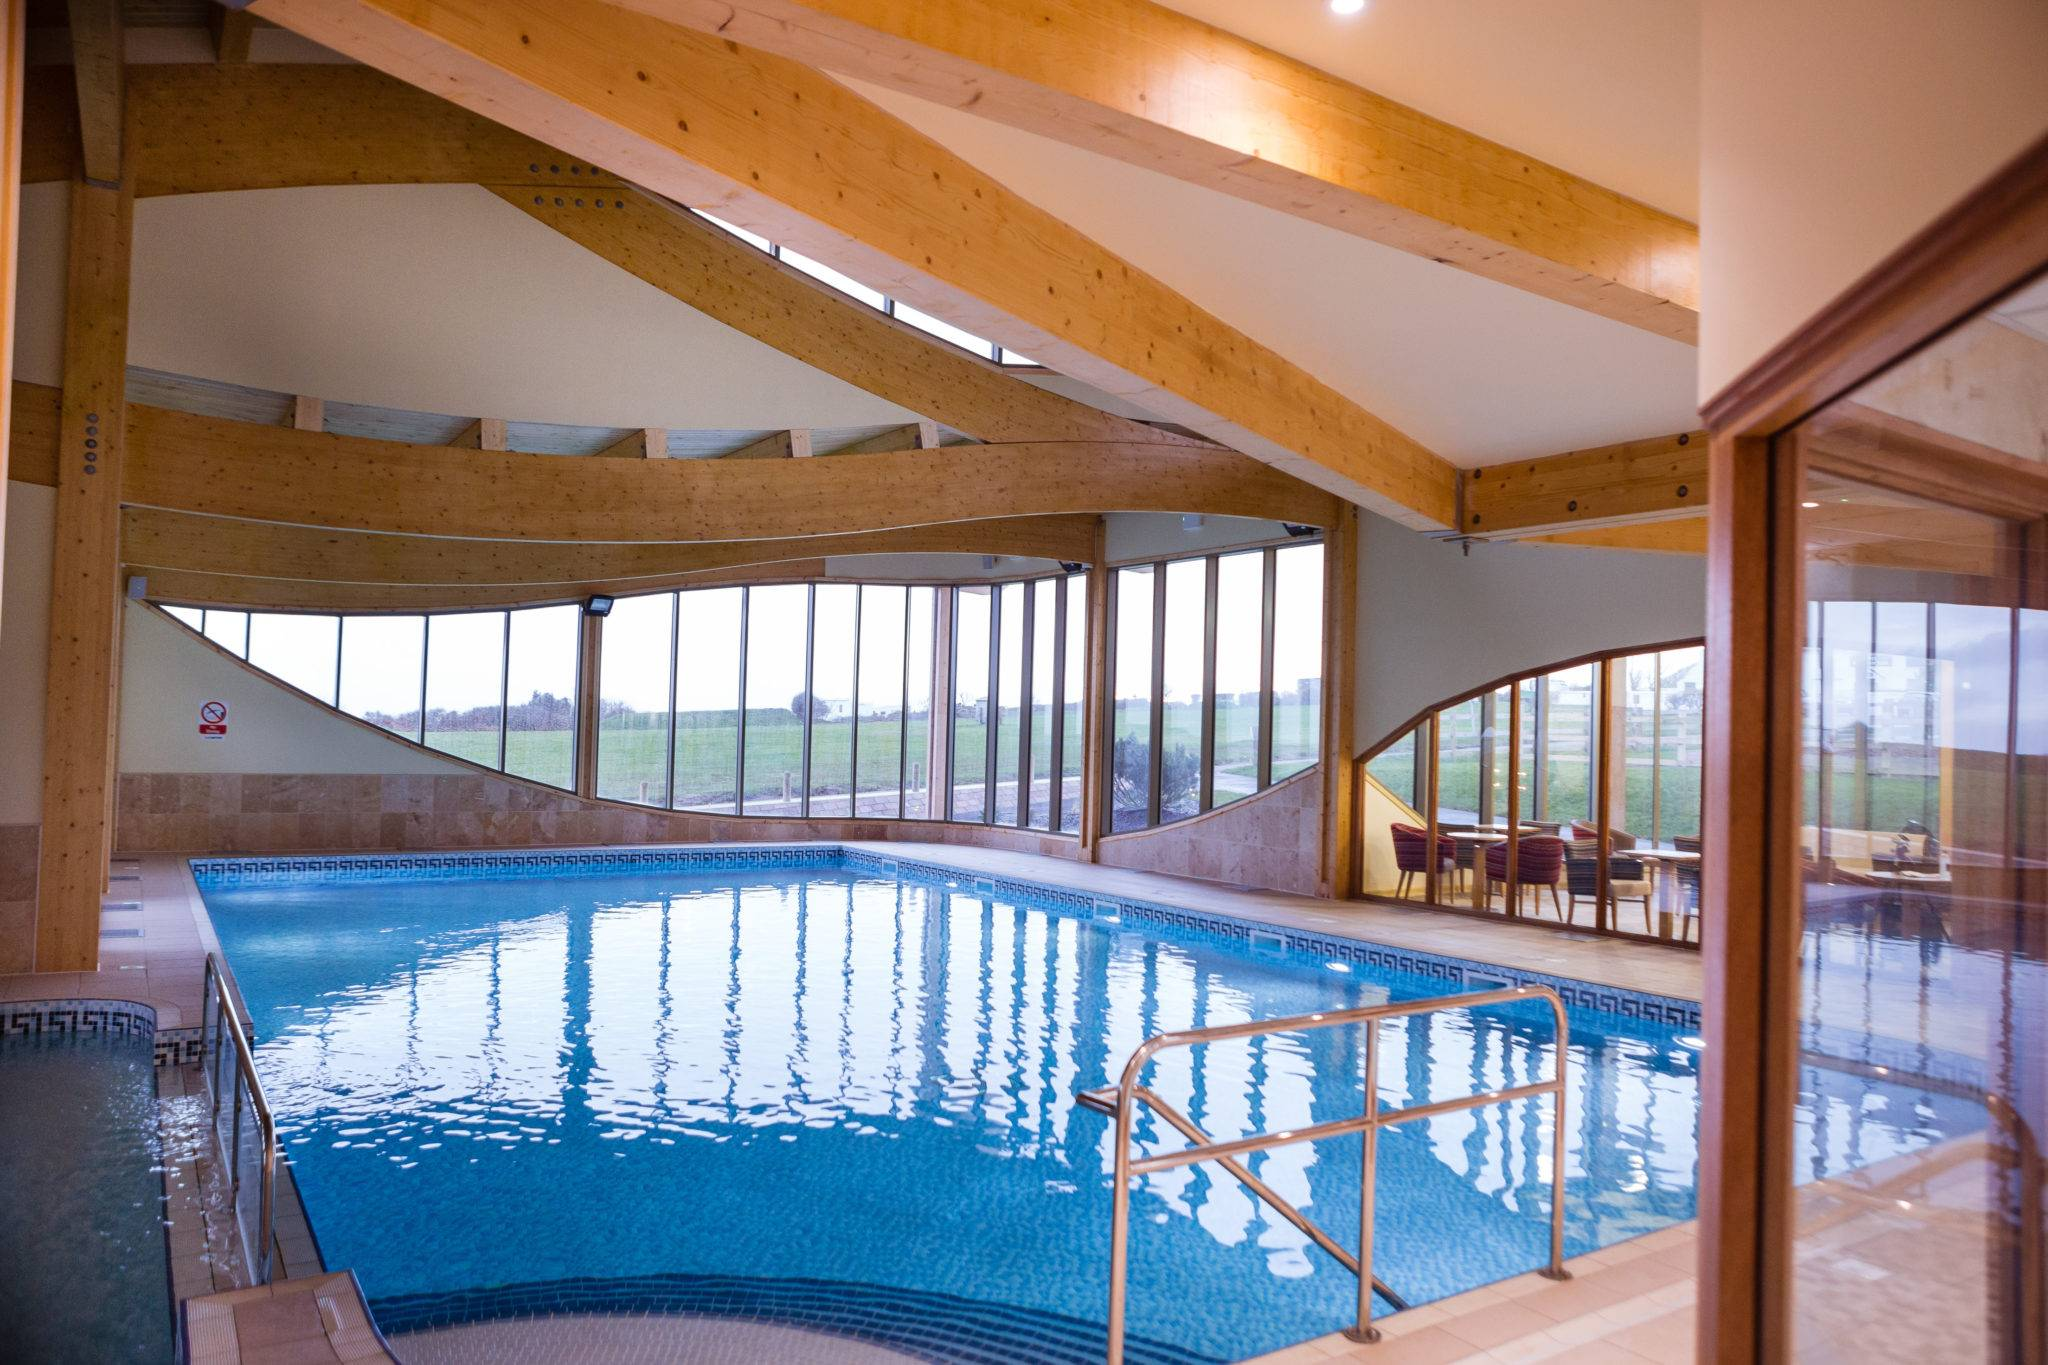 http://silverbay.co.uk/wp-content/uploads/2016/12/silver-bay-holiday-village-anglesey-swimming-pool-leisure-centre.jpg